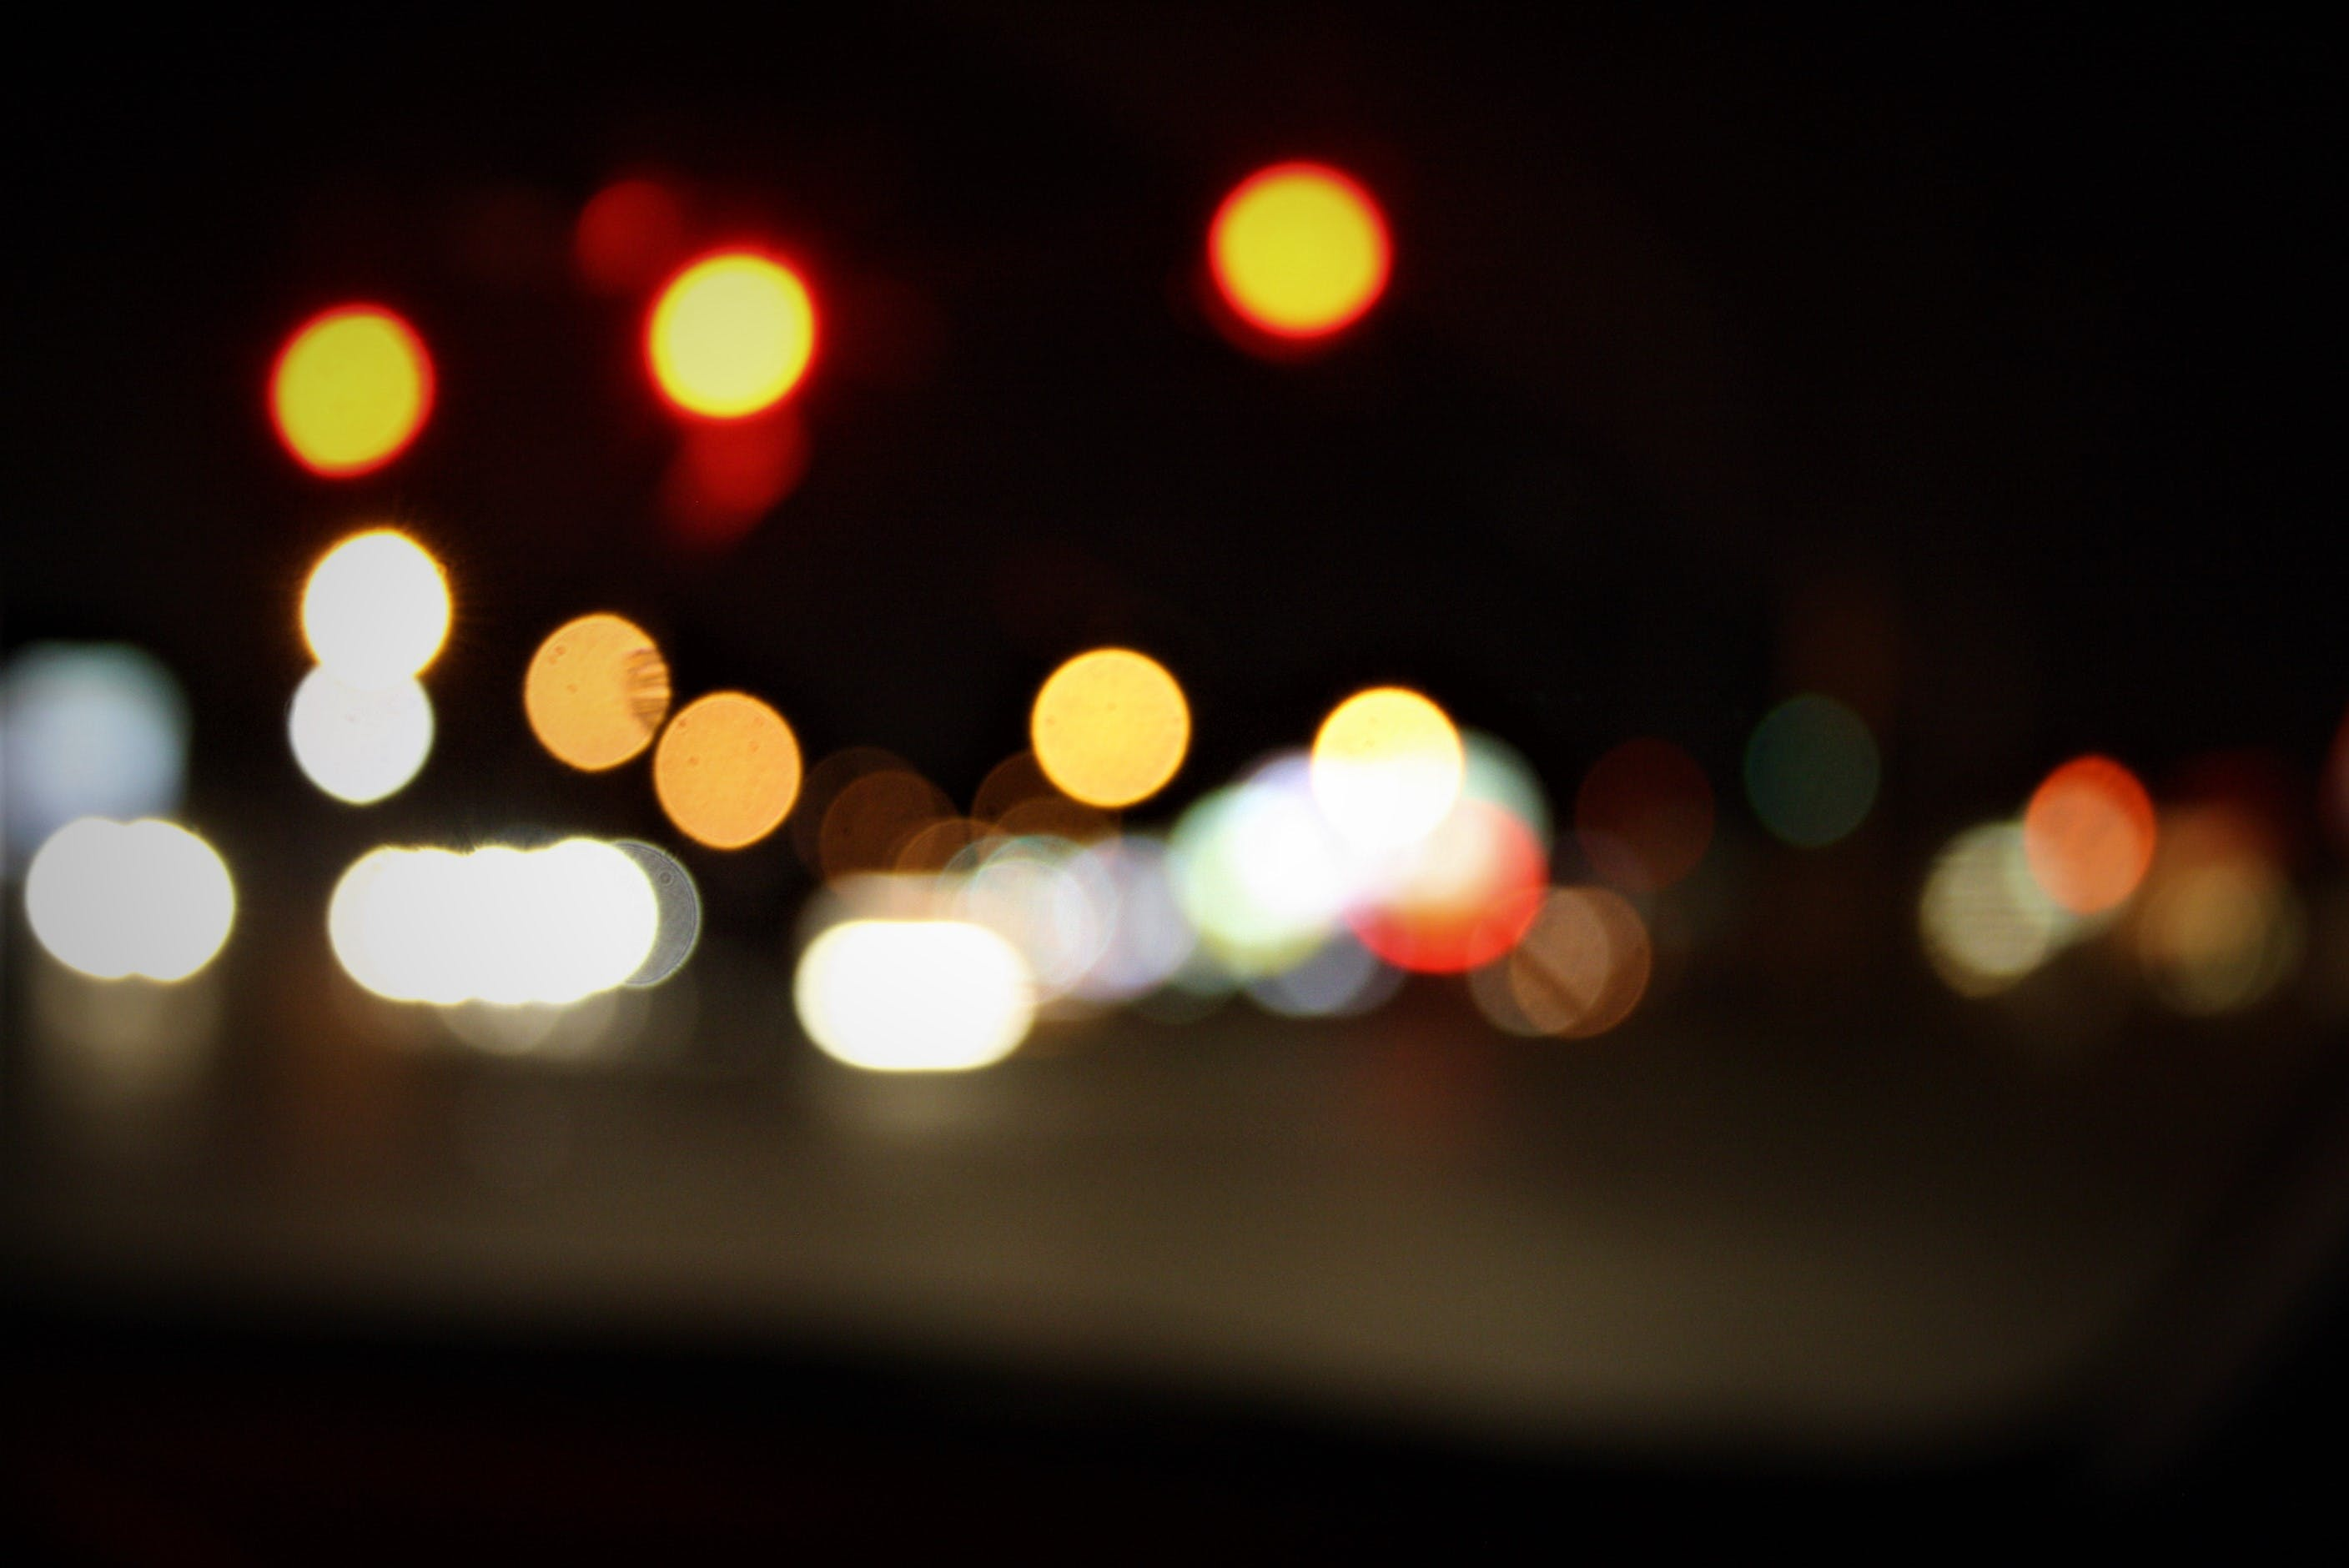 Free stock photo of drive, driving, glow, glowing